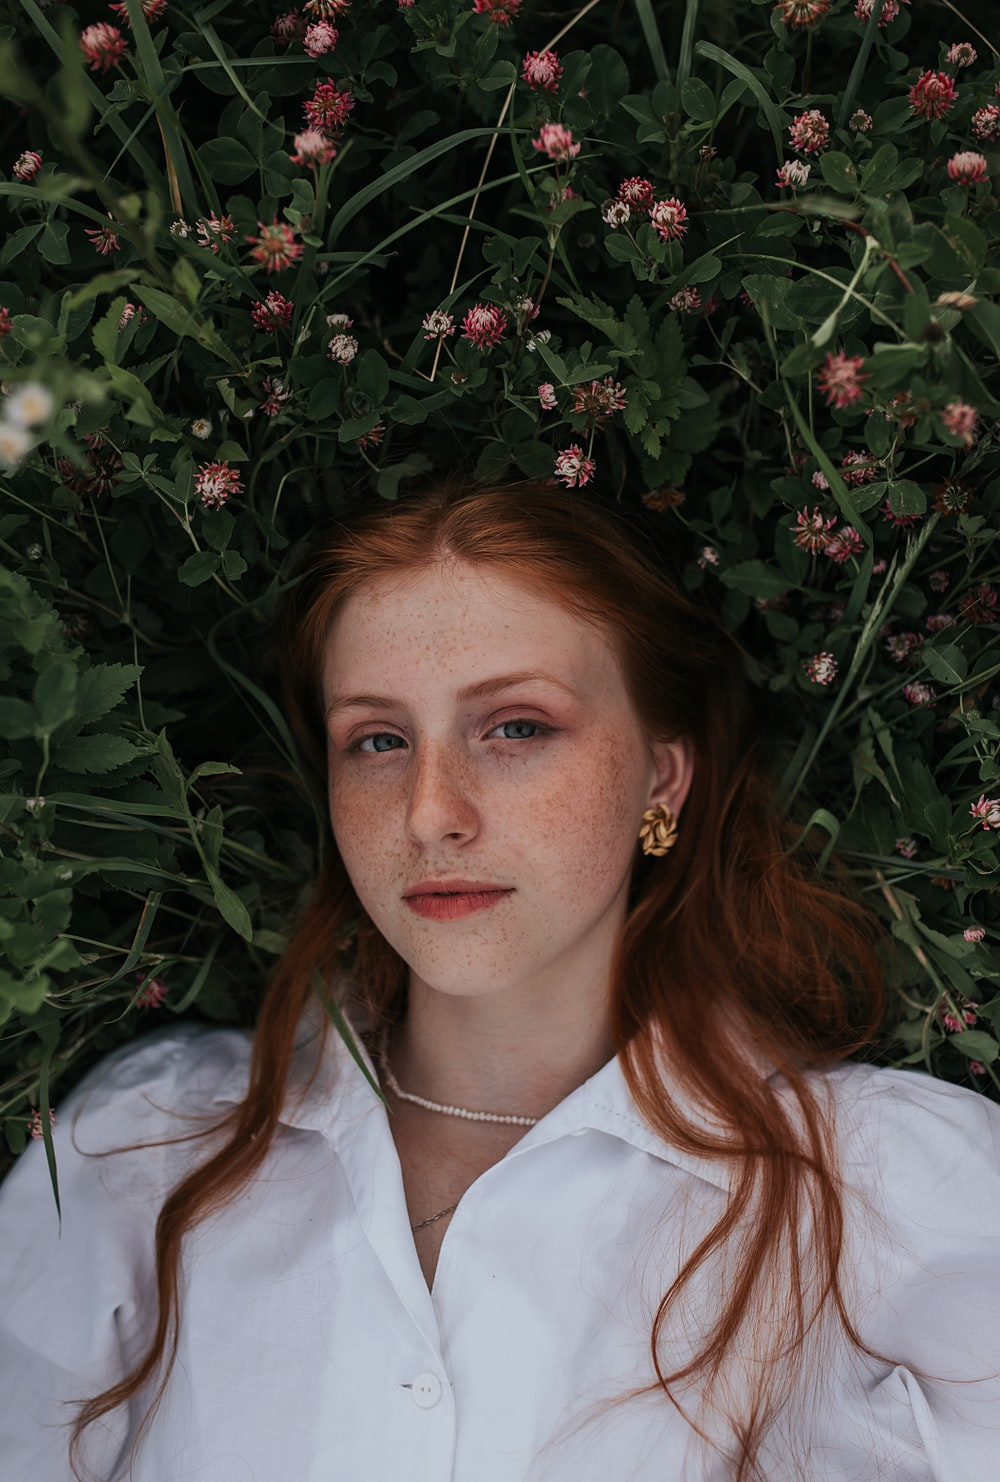 woman in white button up shirt lying on green grass